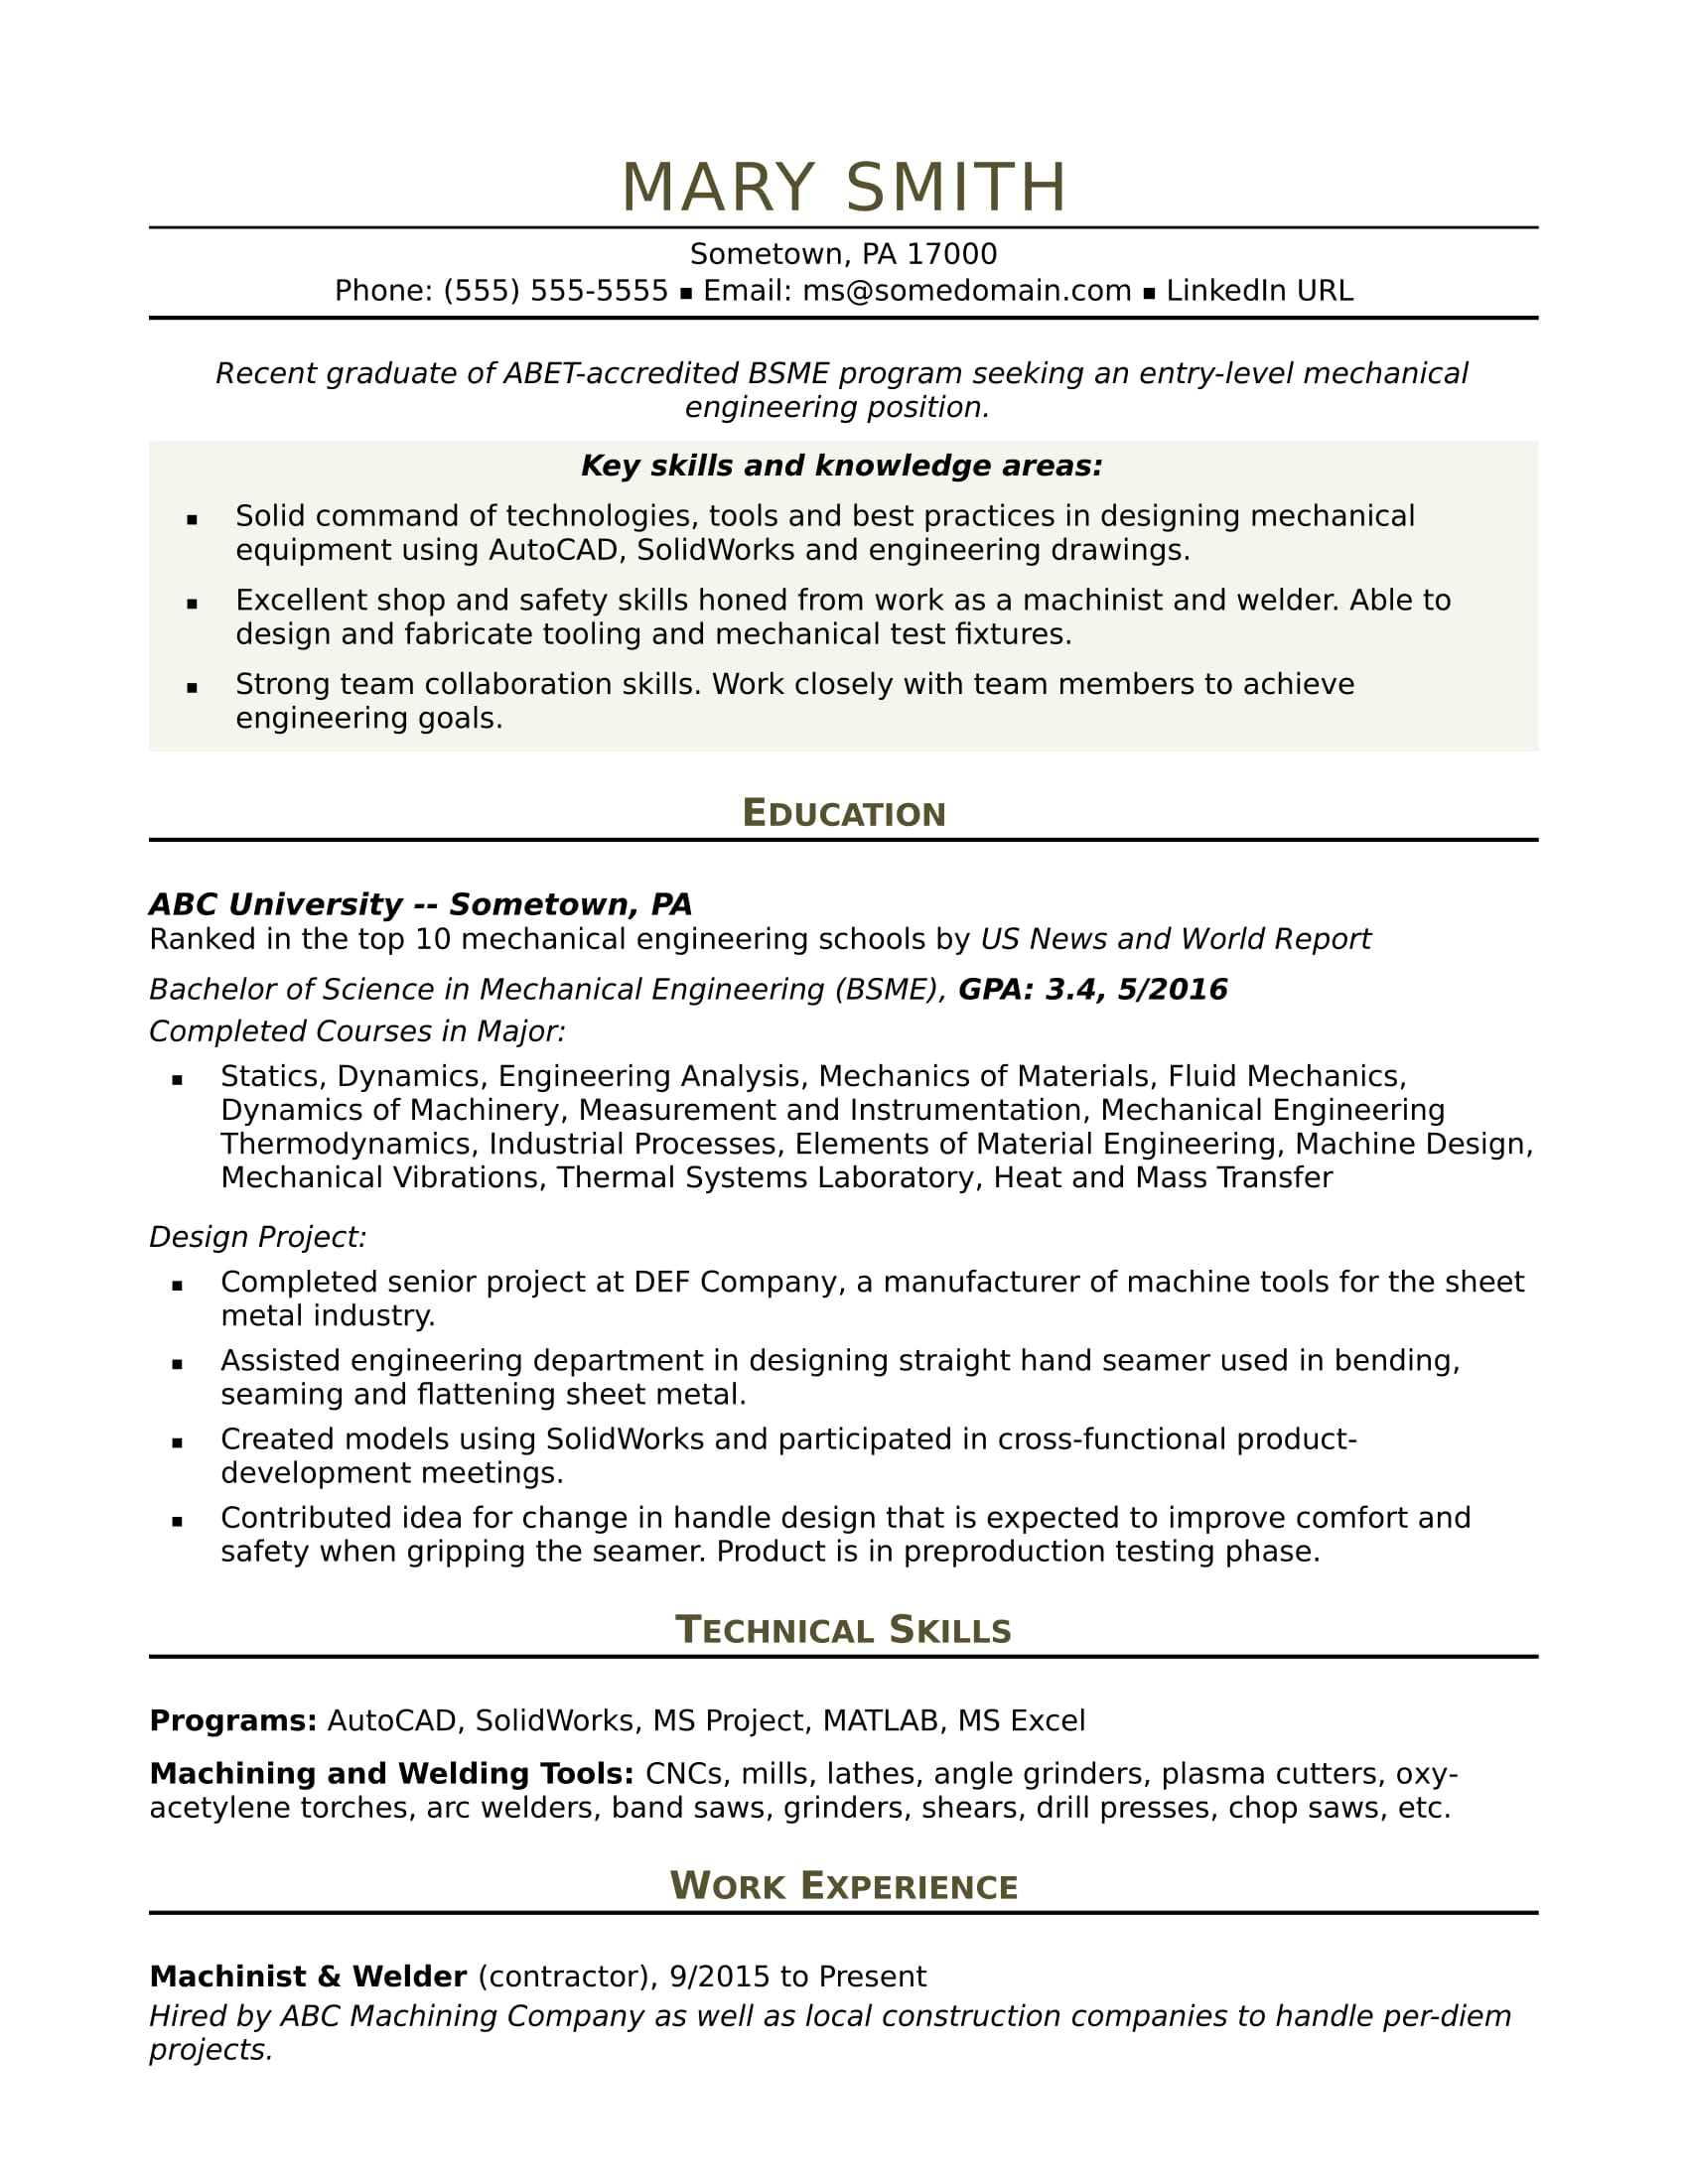 Technical Resume Tips Sample Resume For An Entry Level Mechanical Engineer Monster